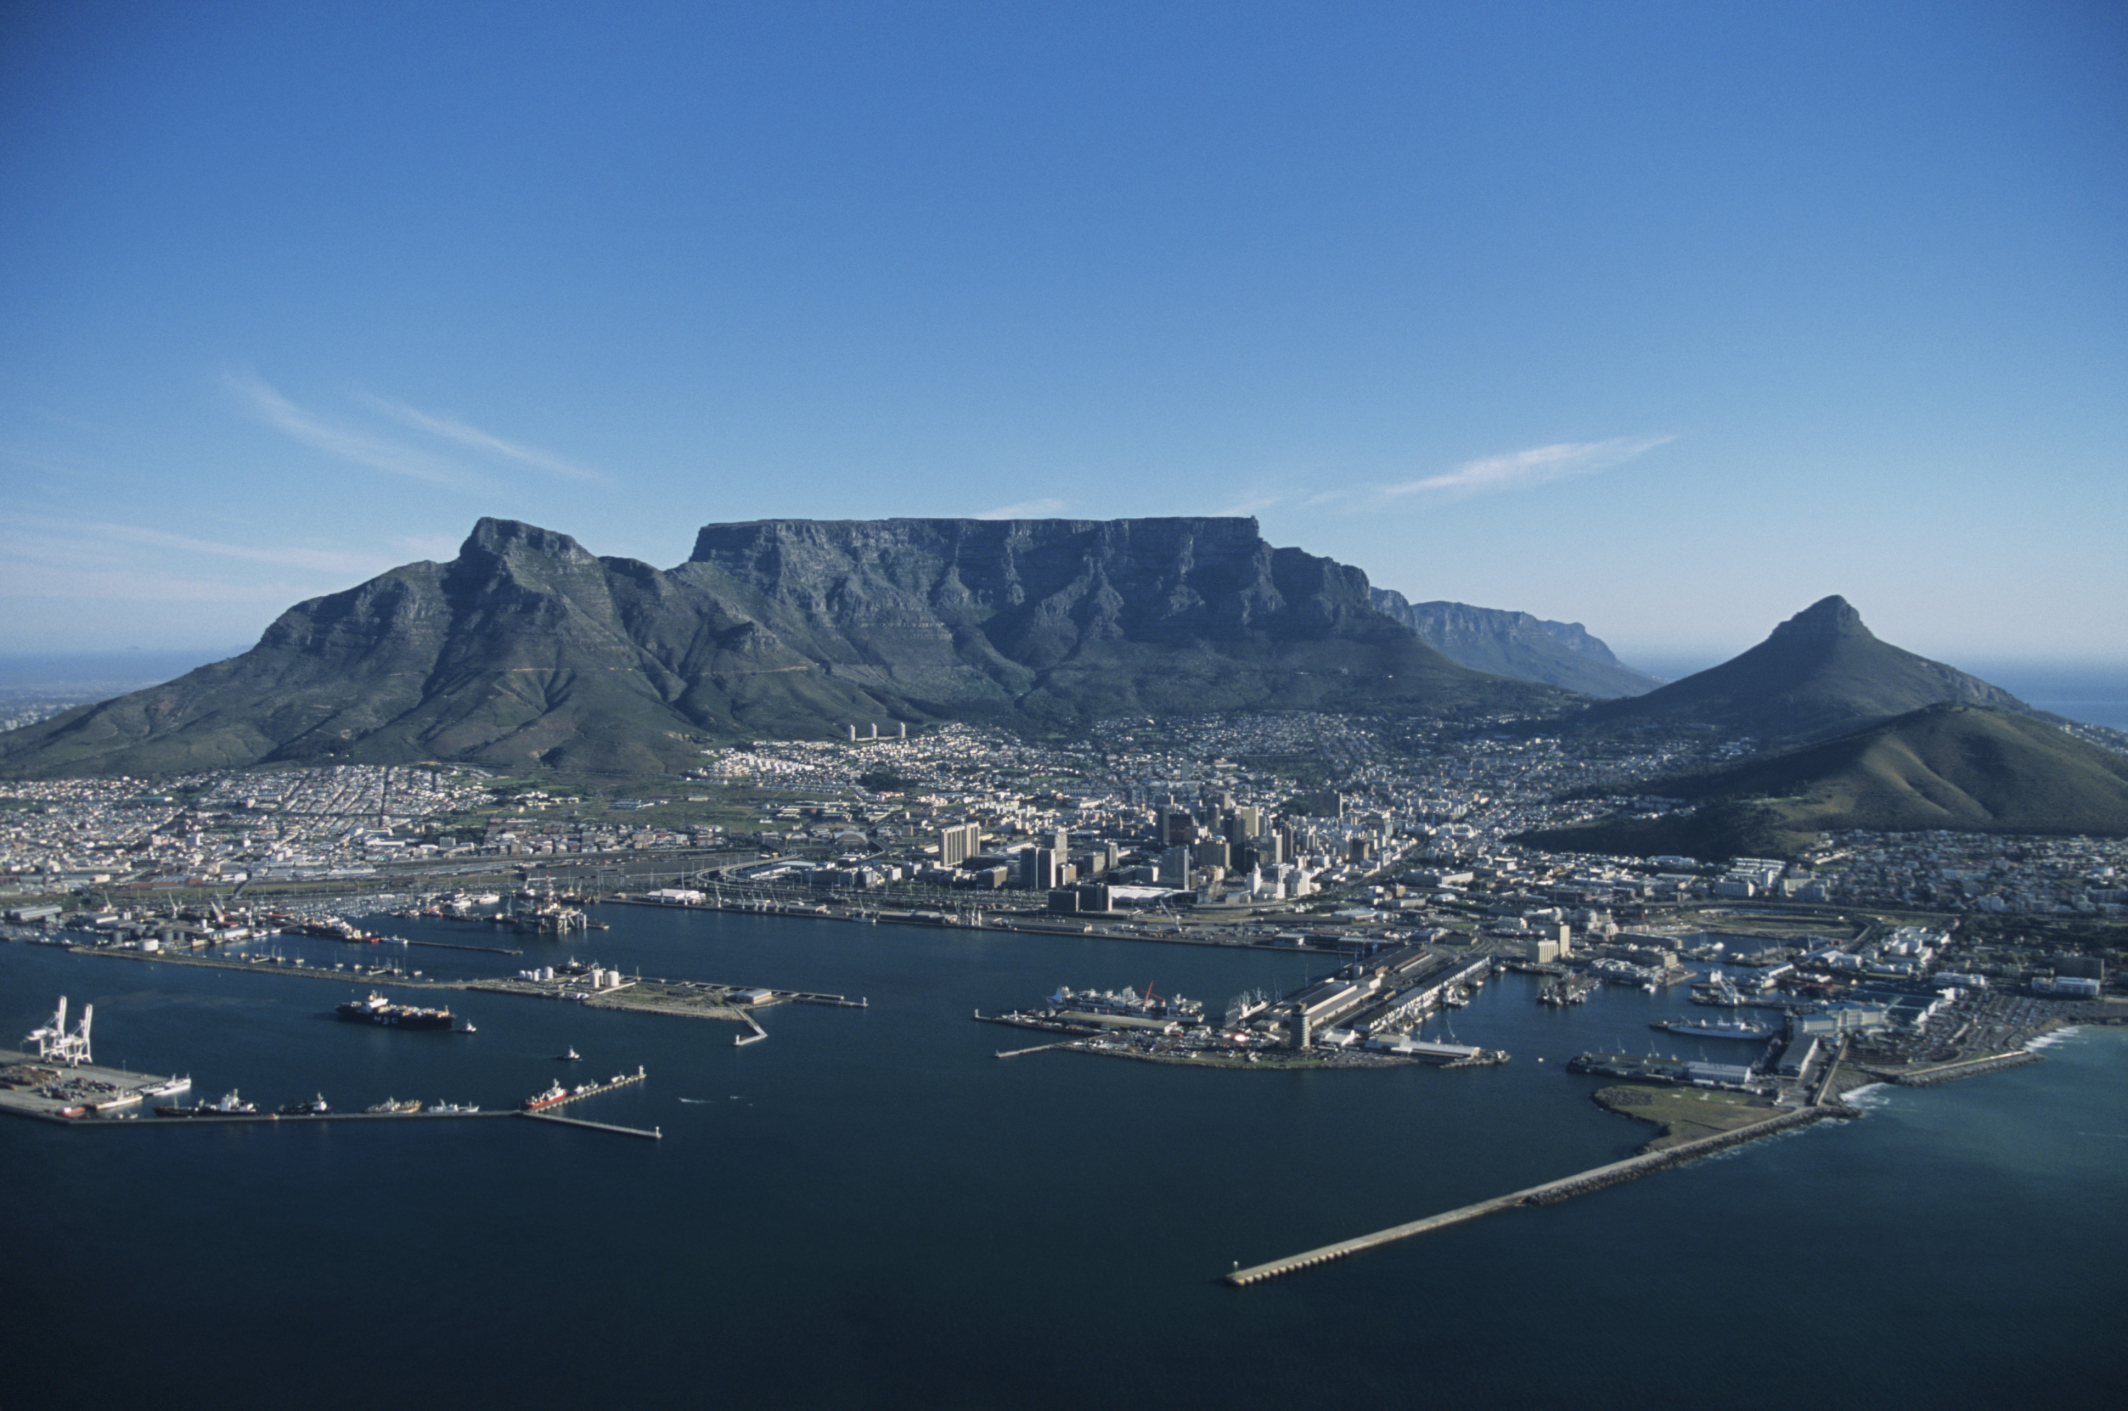 Free download 47 table mountain wallpapers table mountain - Table mountain wallpaper ...